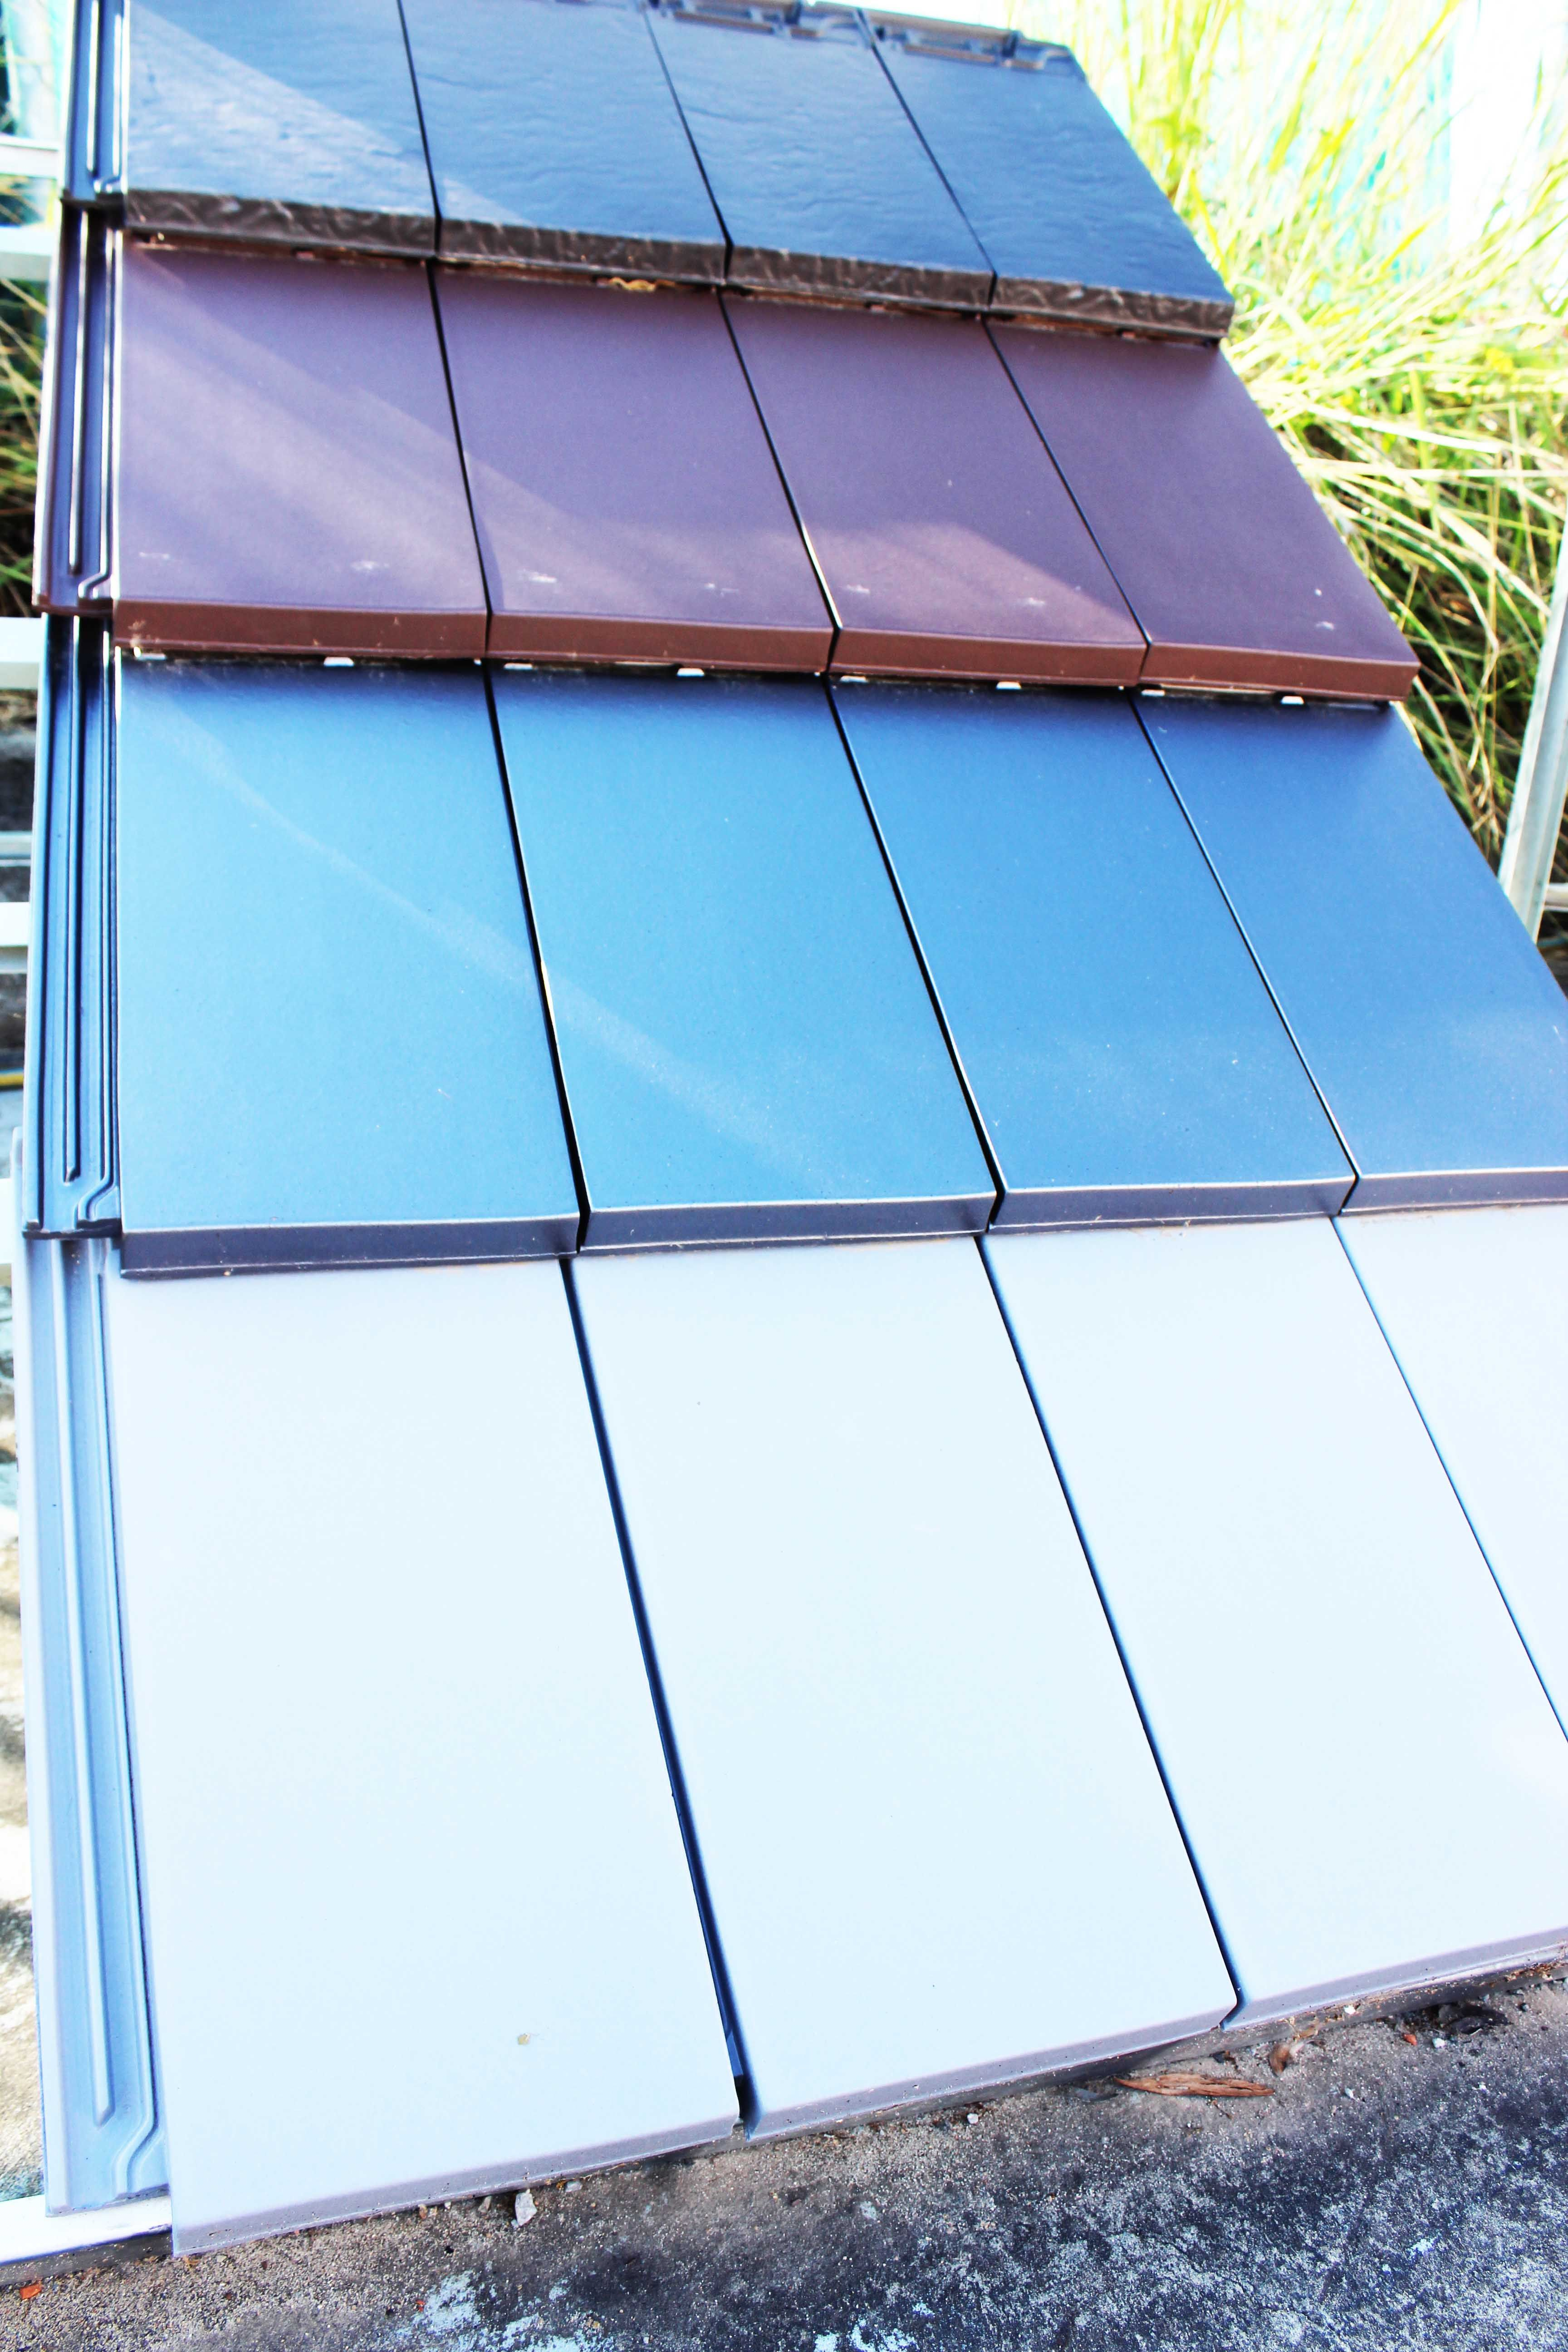 Our Plasma Slate Roof Tiles Comes In Many Different Metallic Colours Rooftiles Terracotta Clay Loh Slate Roof Tiles Terracotta Roof Terracotta Roof Tiles